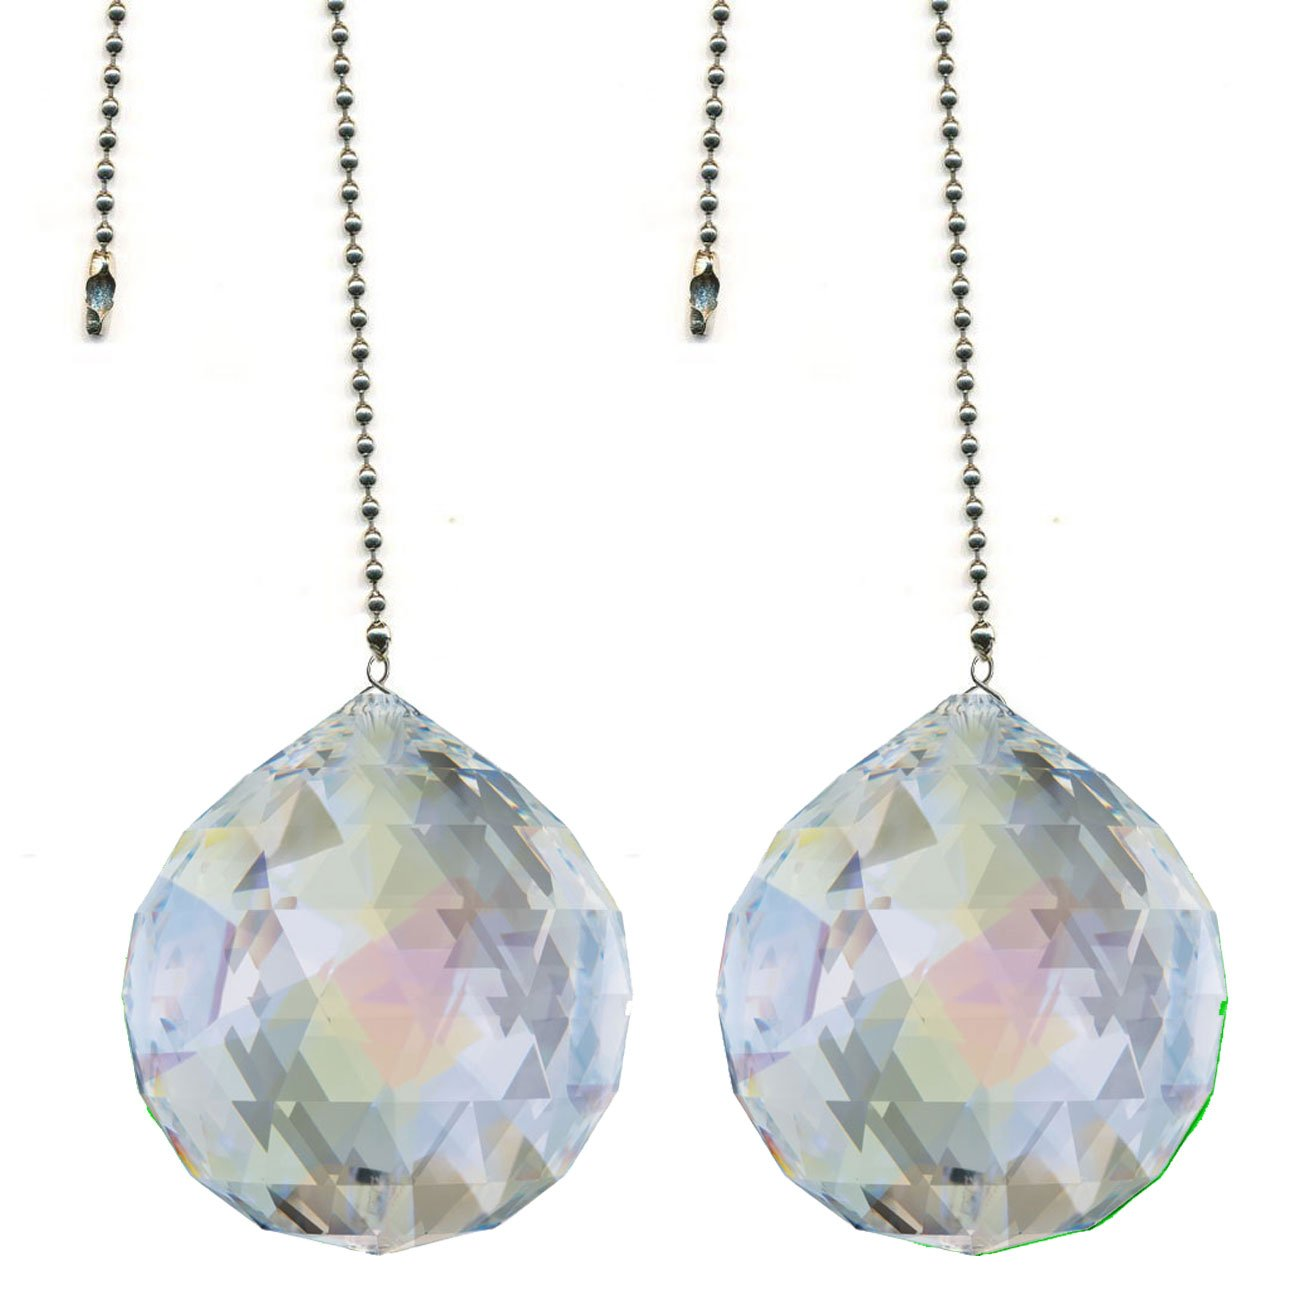 CrystalPlace Ceiling Fan Pull Chain 30mm Swarovski Strass Aurora Borealis Faceted Ball Prism Fan Pulley Set of 2